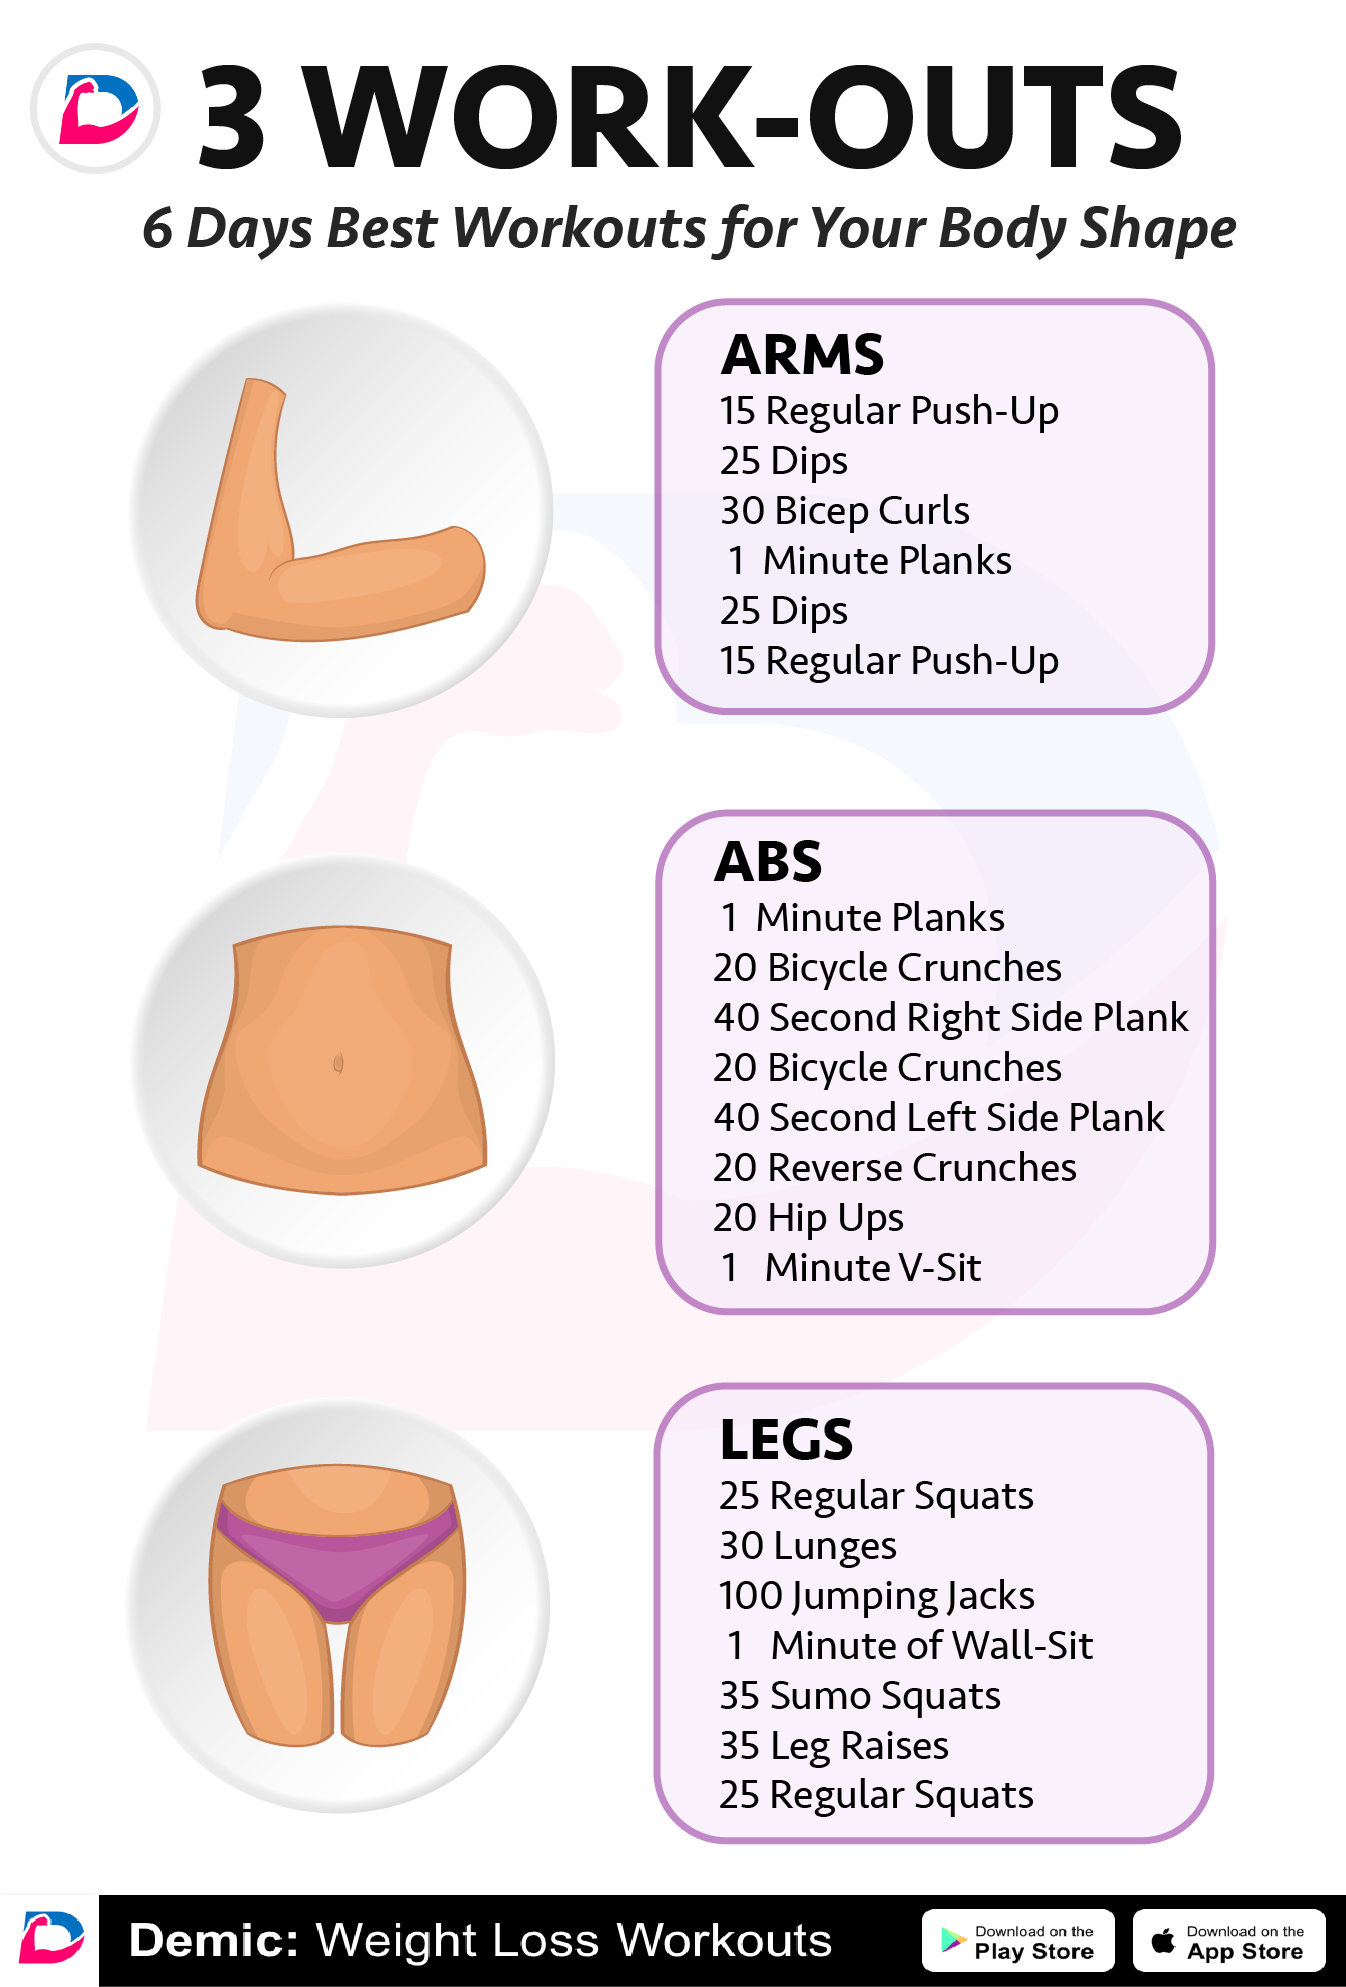 Best Workouts for Your Body Shape | Demic: Fitness | Workout